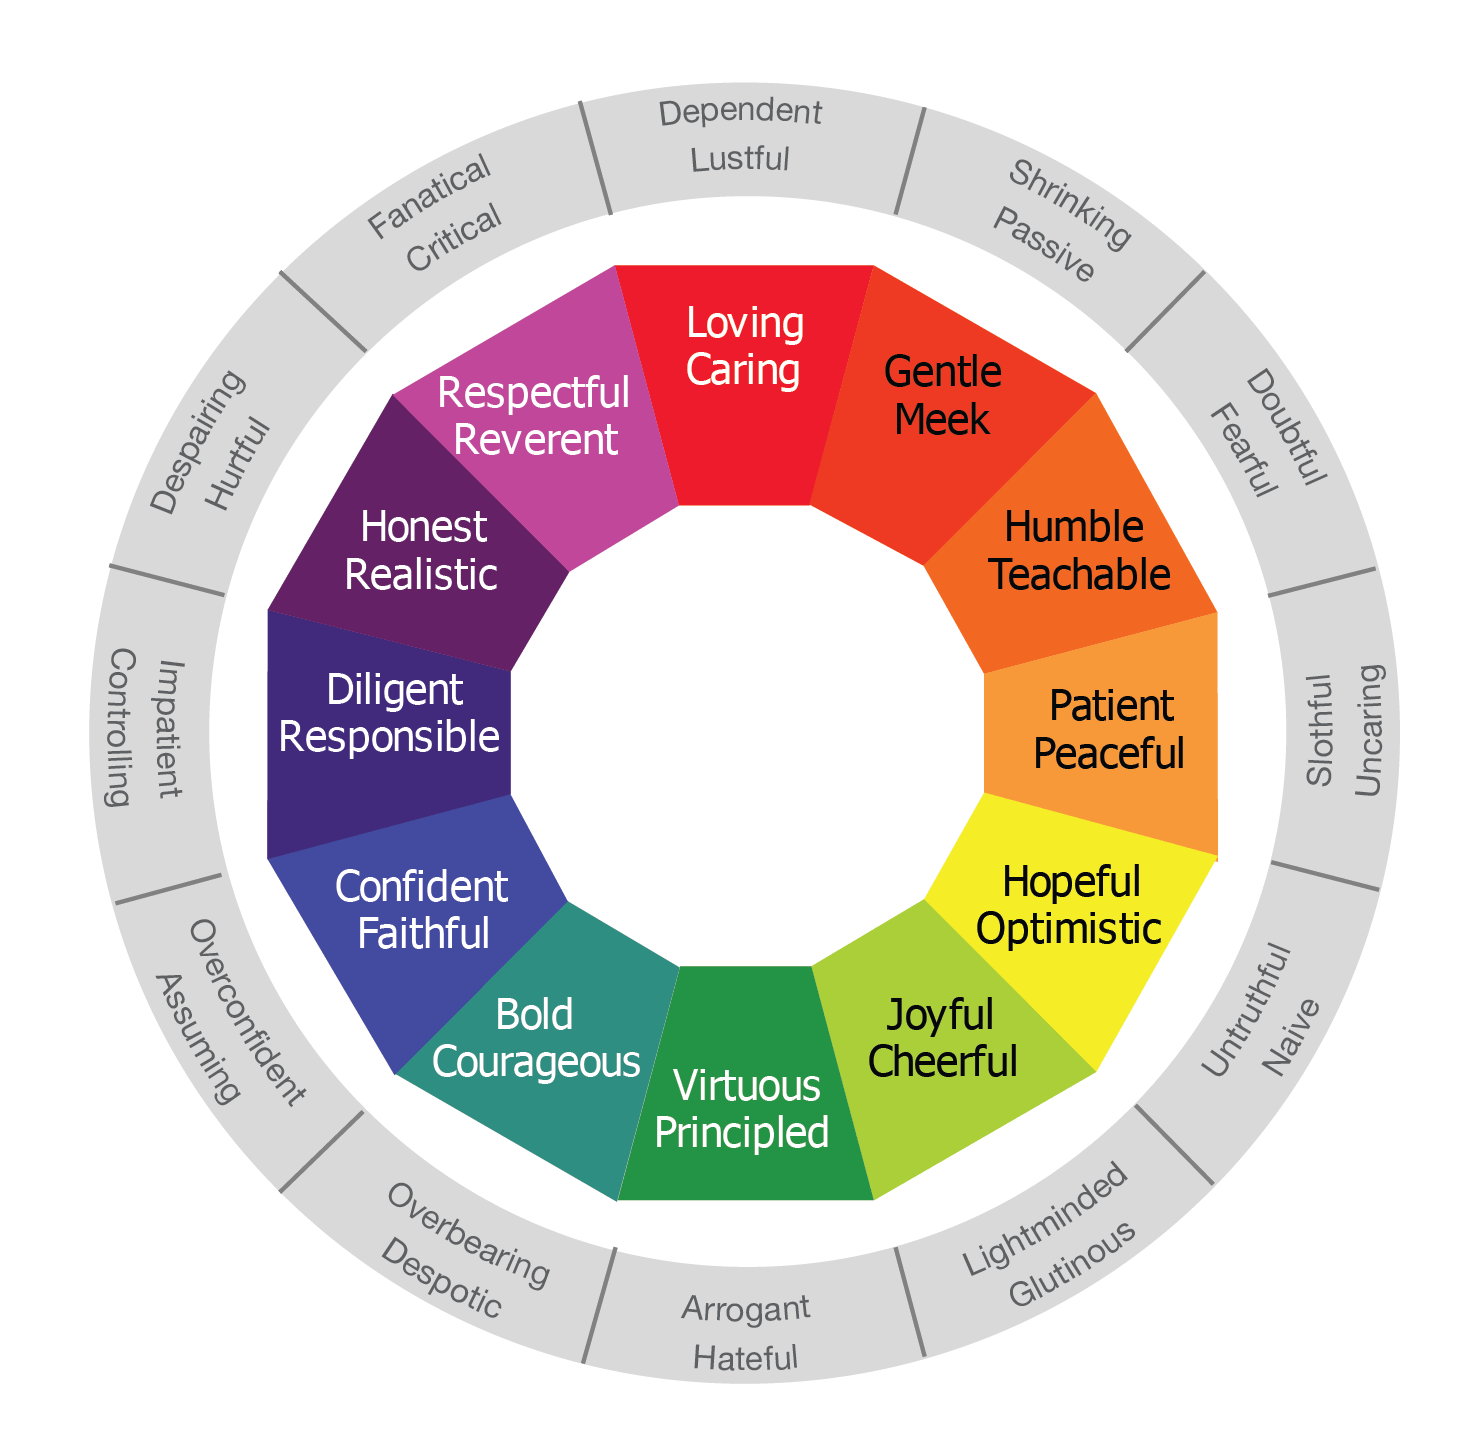 Graphic of virtues at the center and vices outside